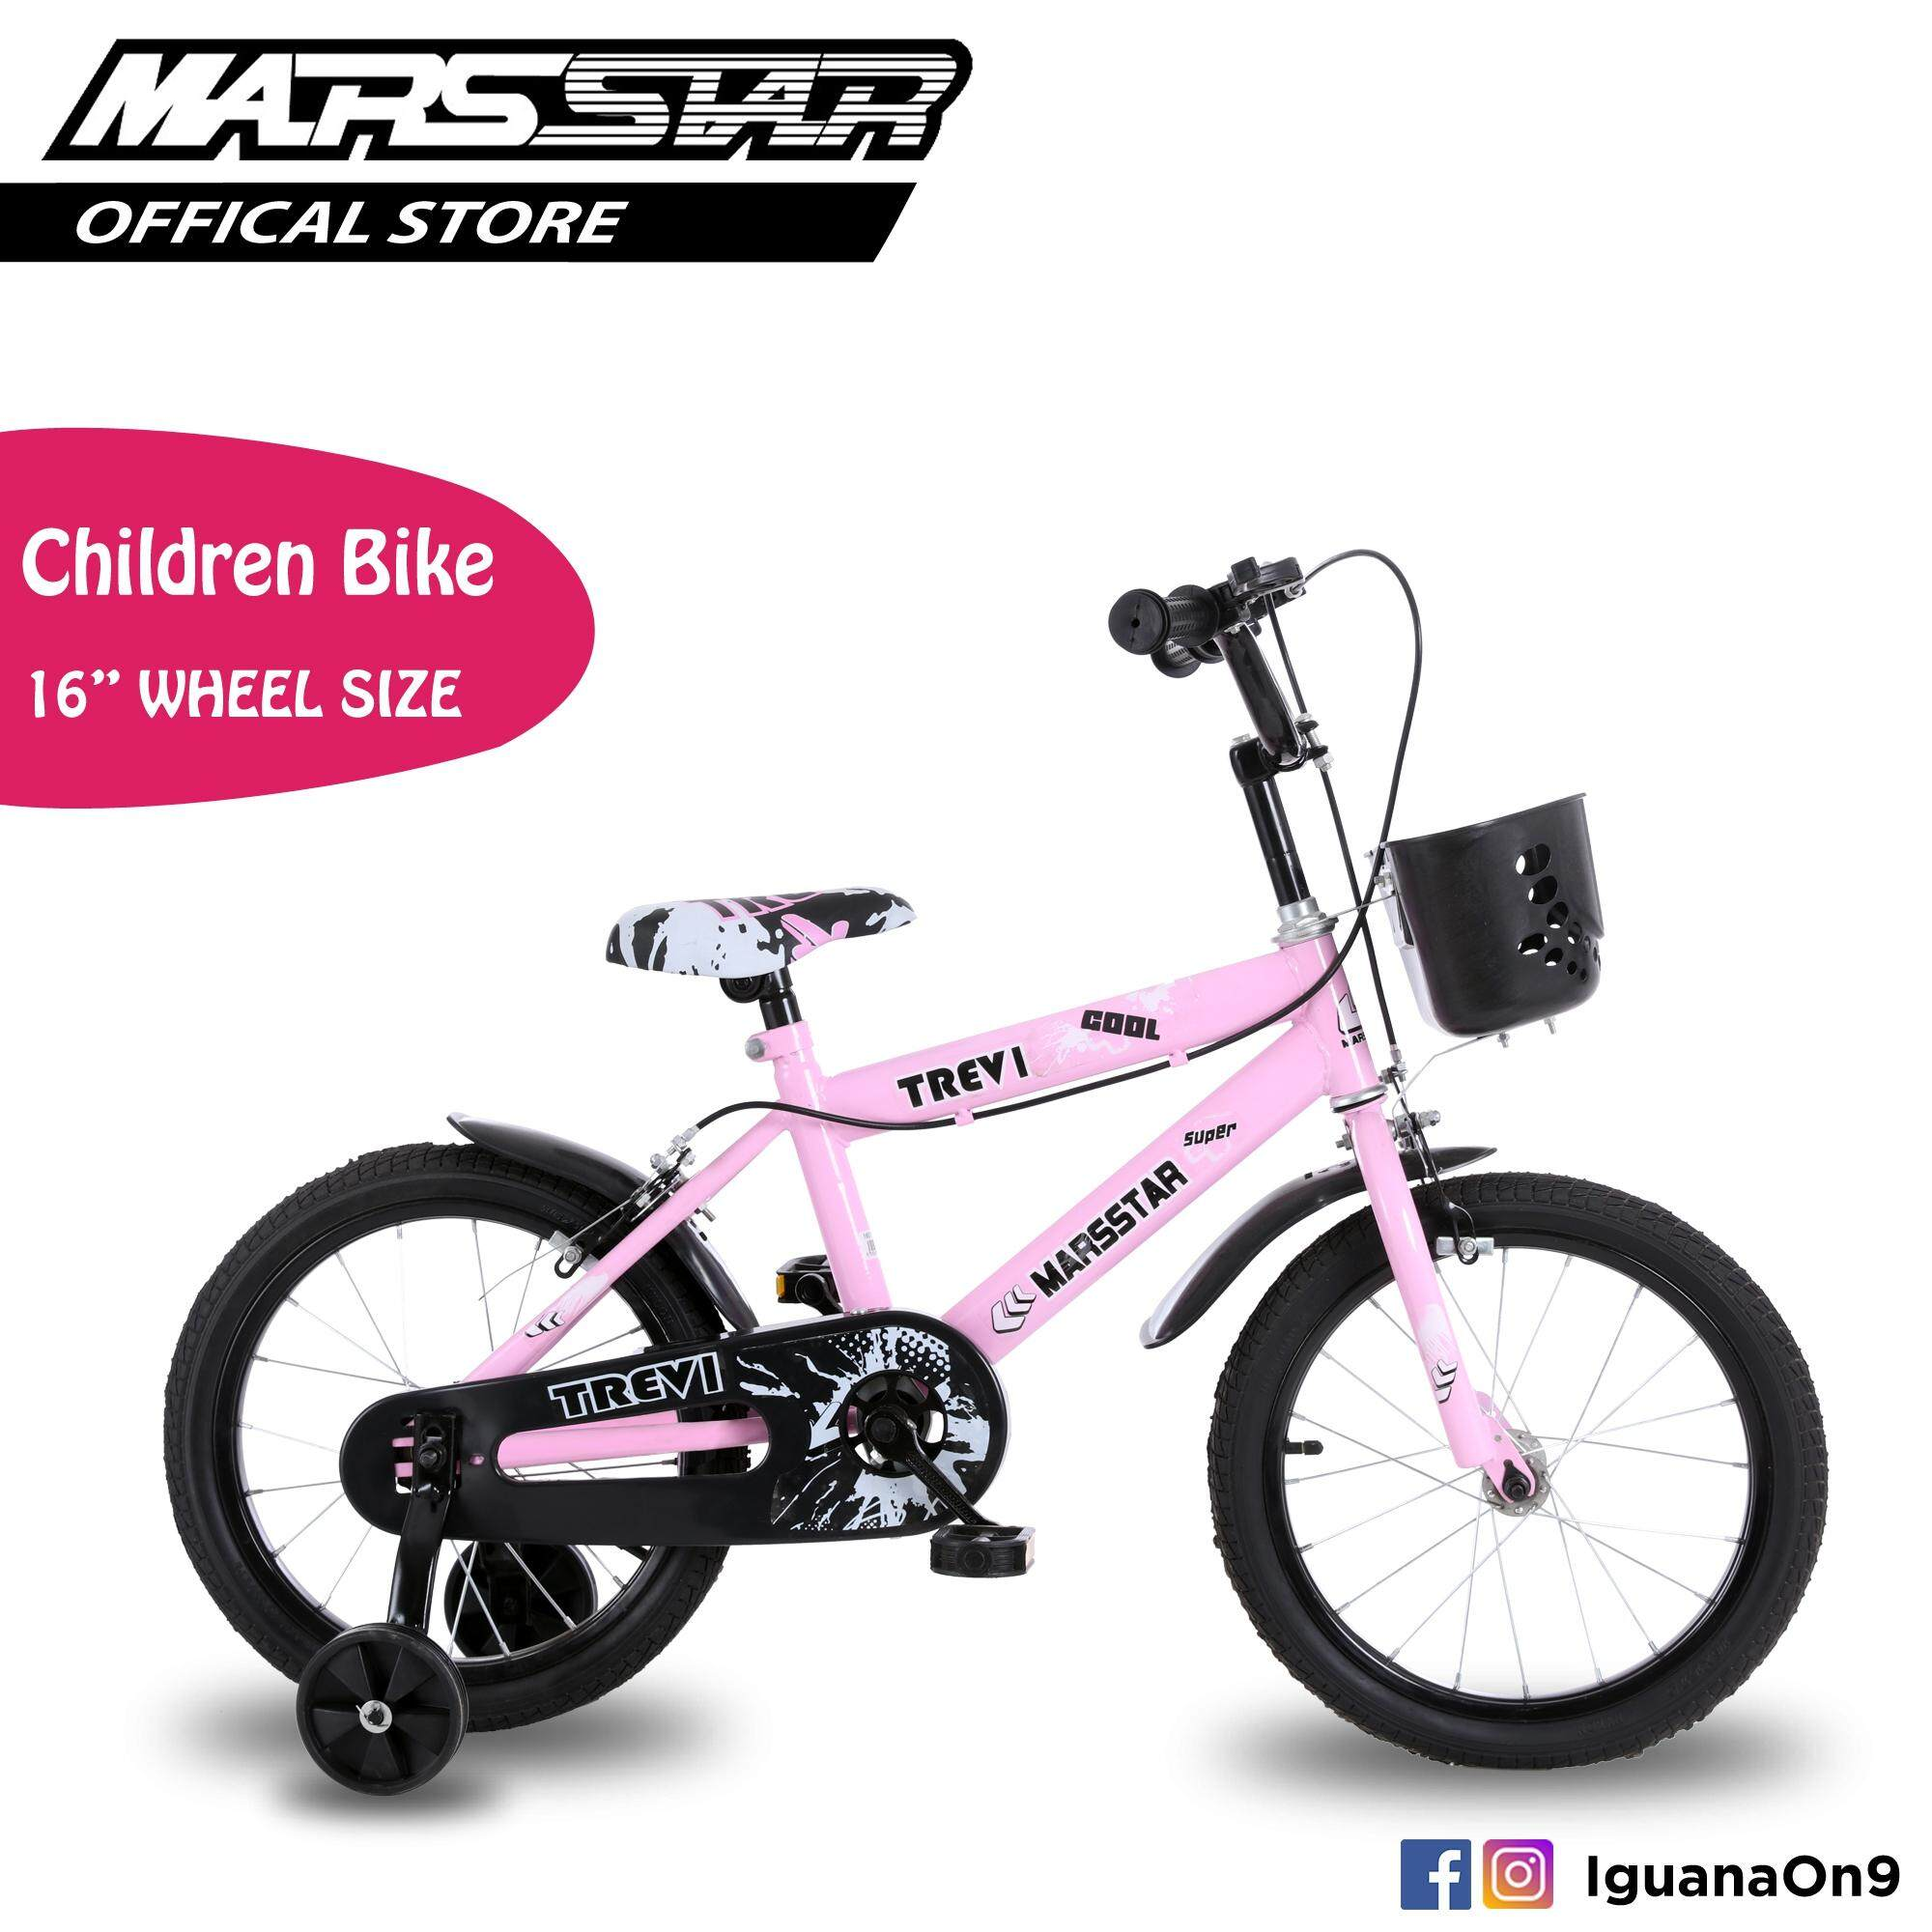 MARSSTAR 1601 Trevi 16 inch Children Bicycle with Caliper Brake (Pink)